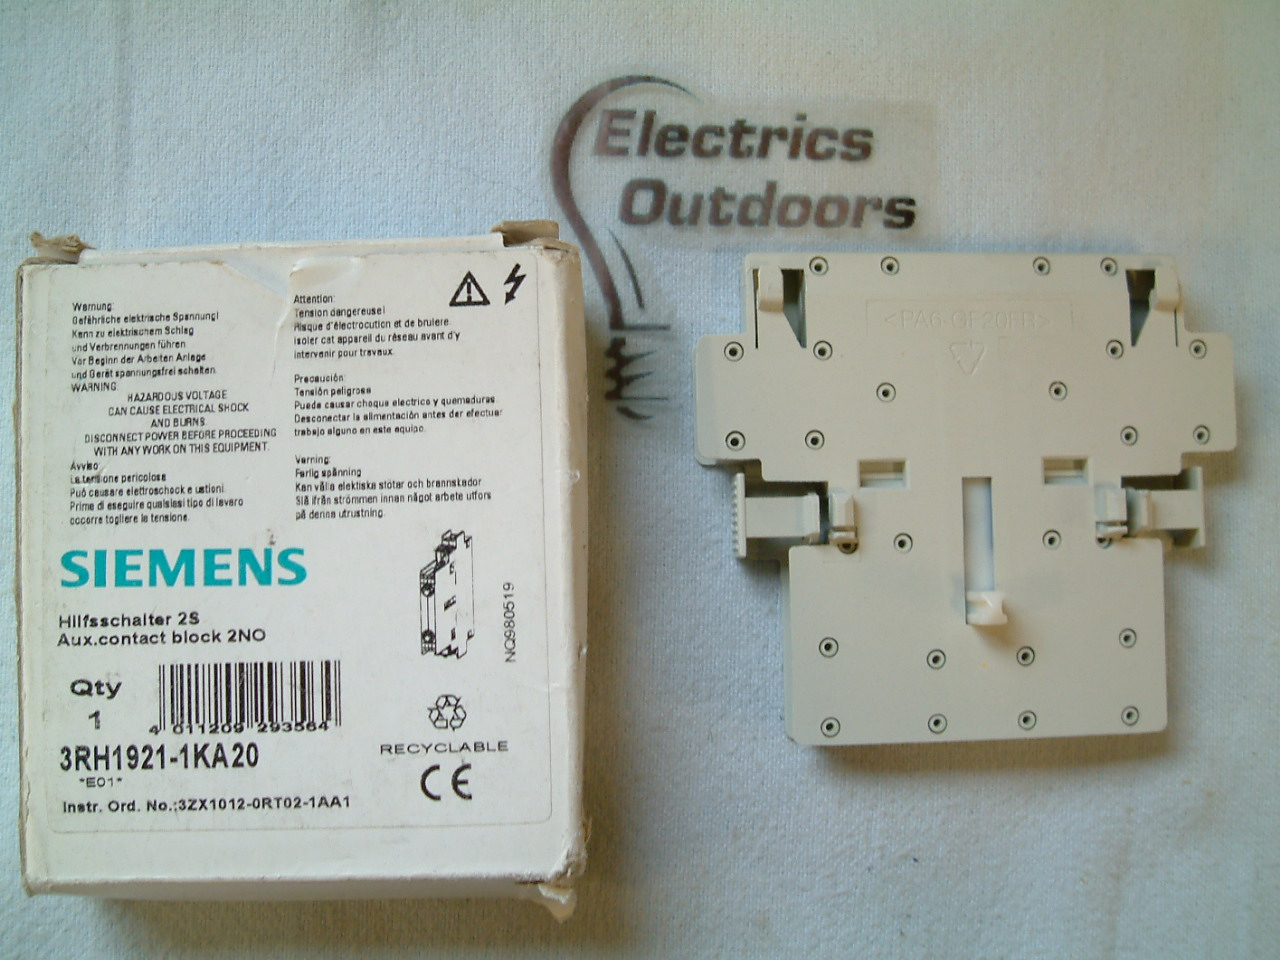 SIEMENS AUXILIARY CONTACT BLOCK 2 NO 3RH1921-1KA20 AUX